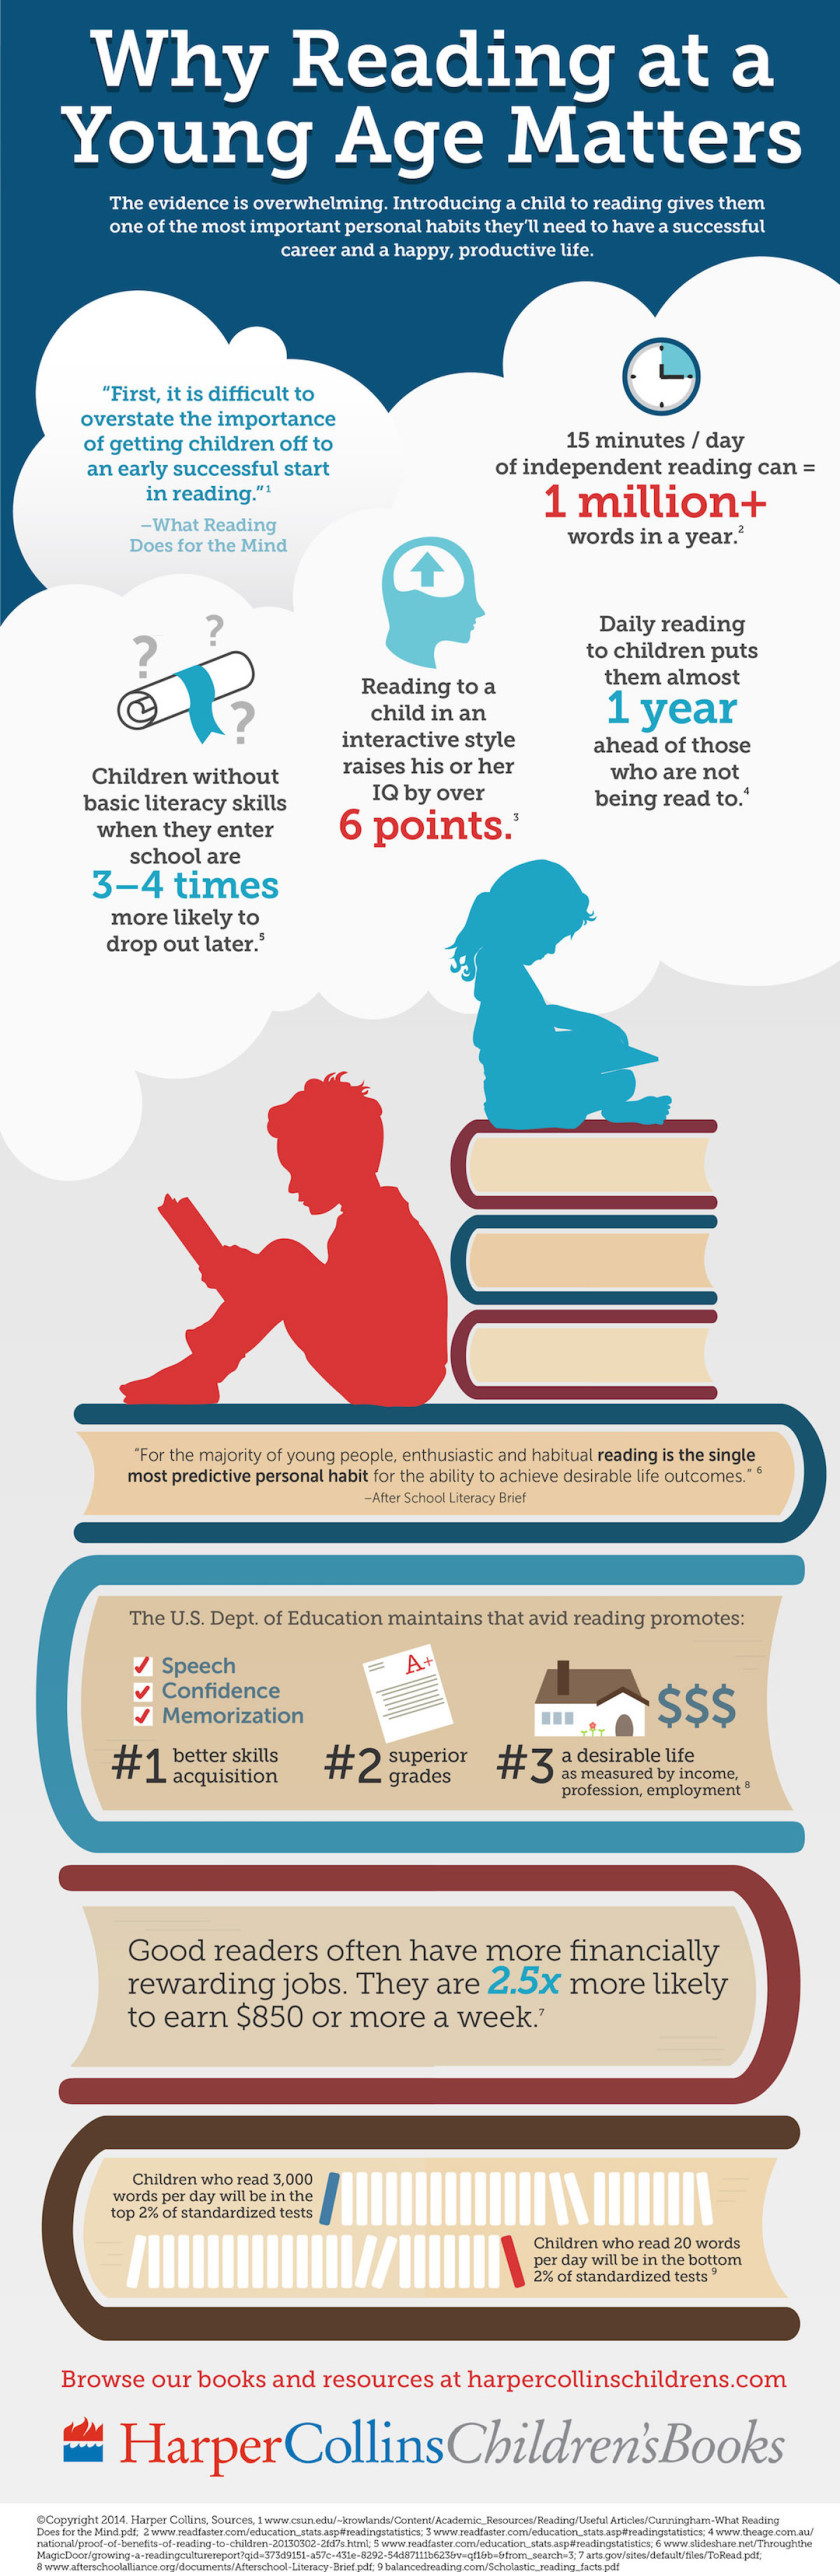 Why-Reading-at-a-young-age-matters-infographic-840x2572